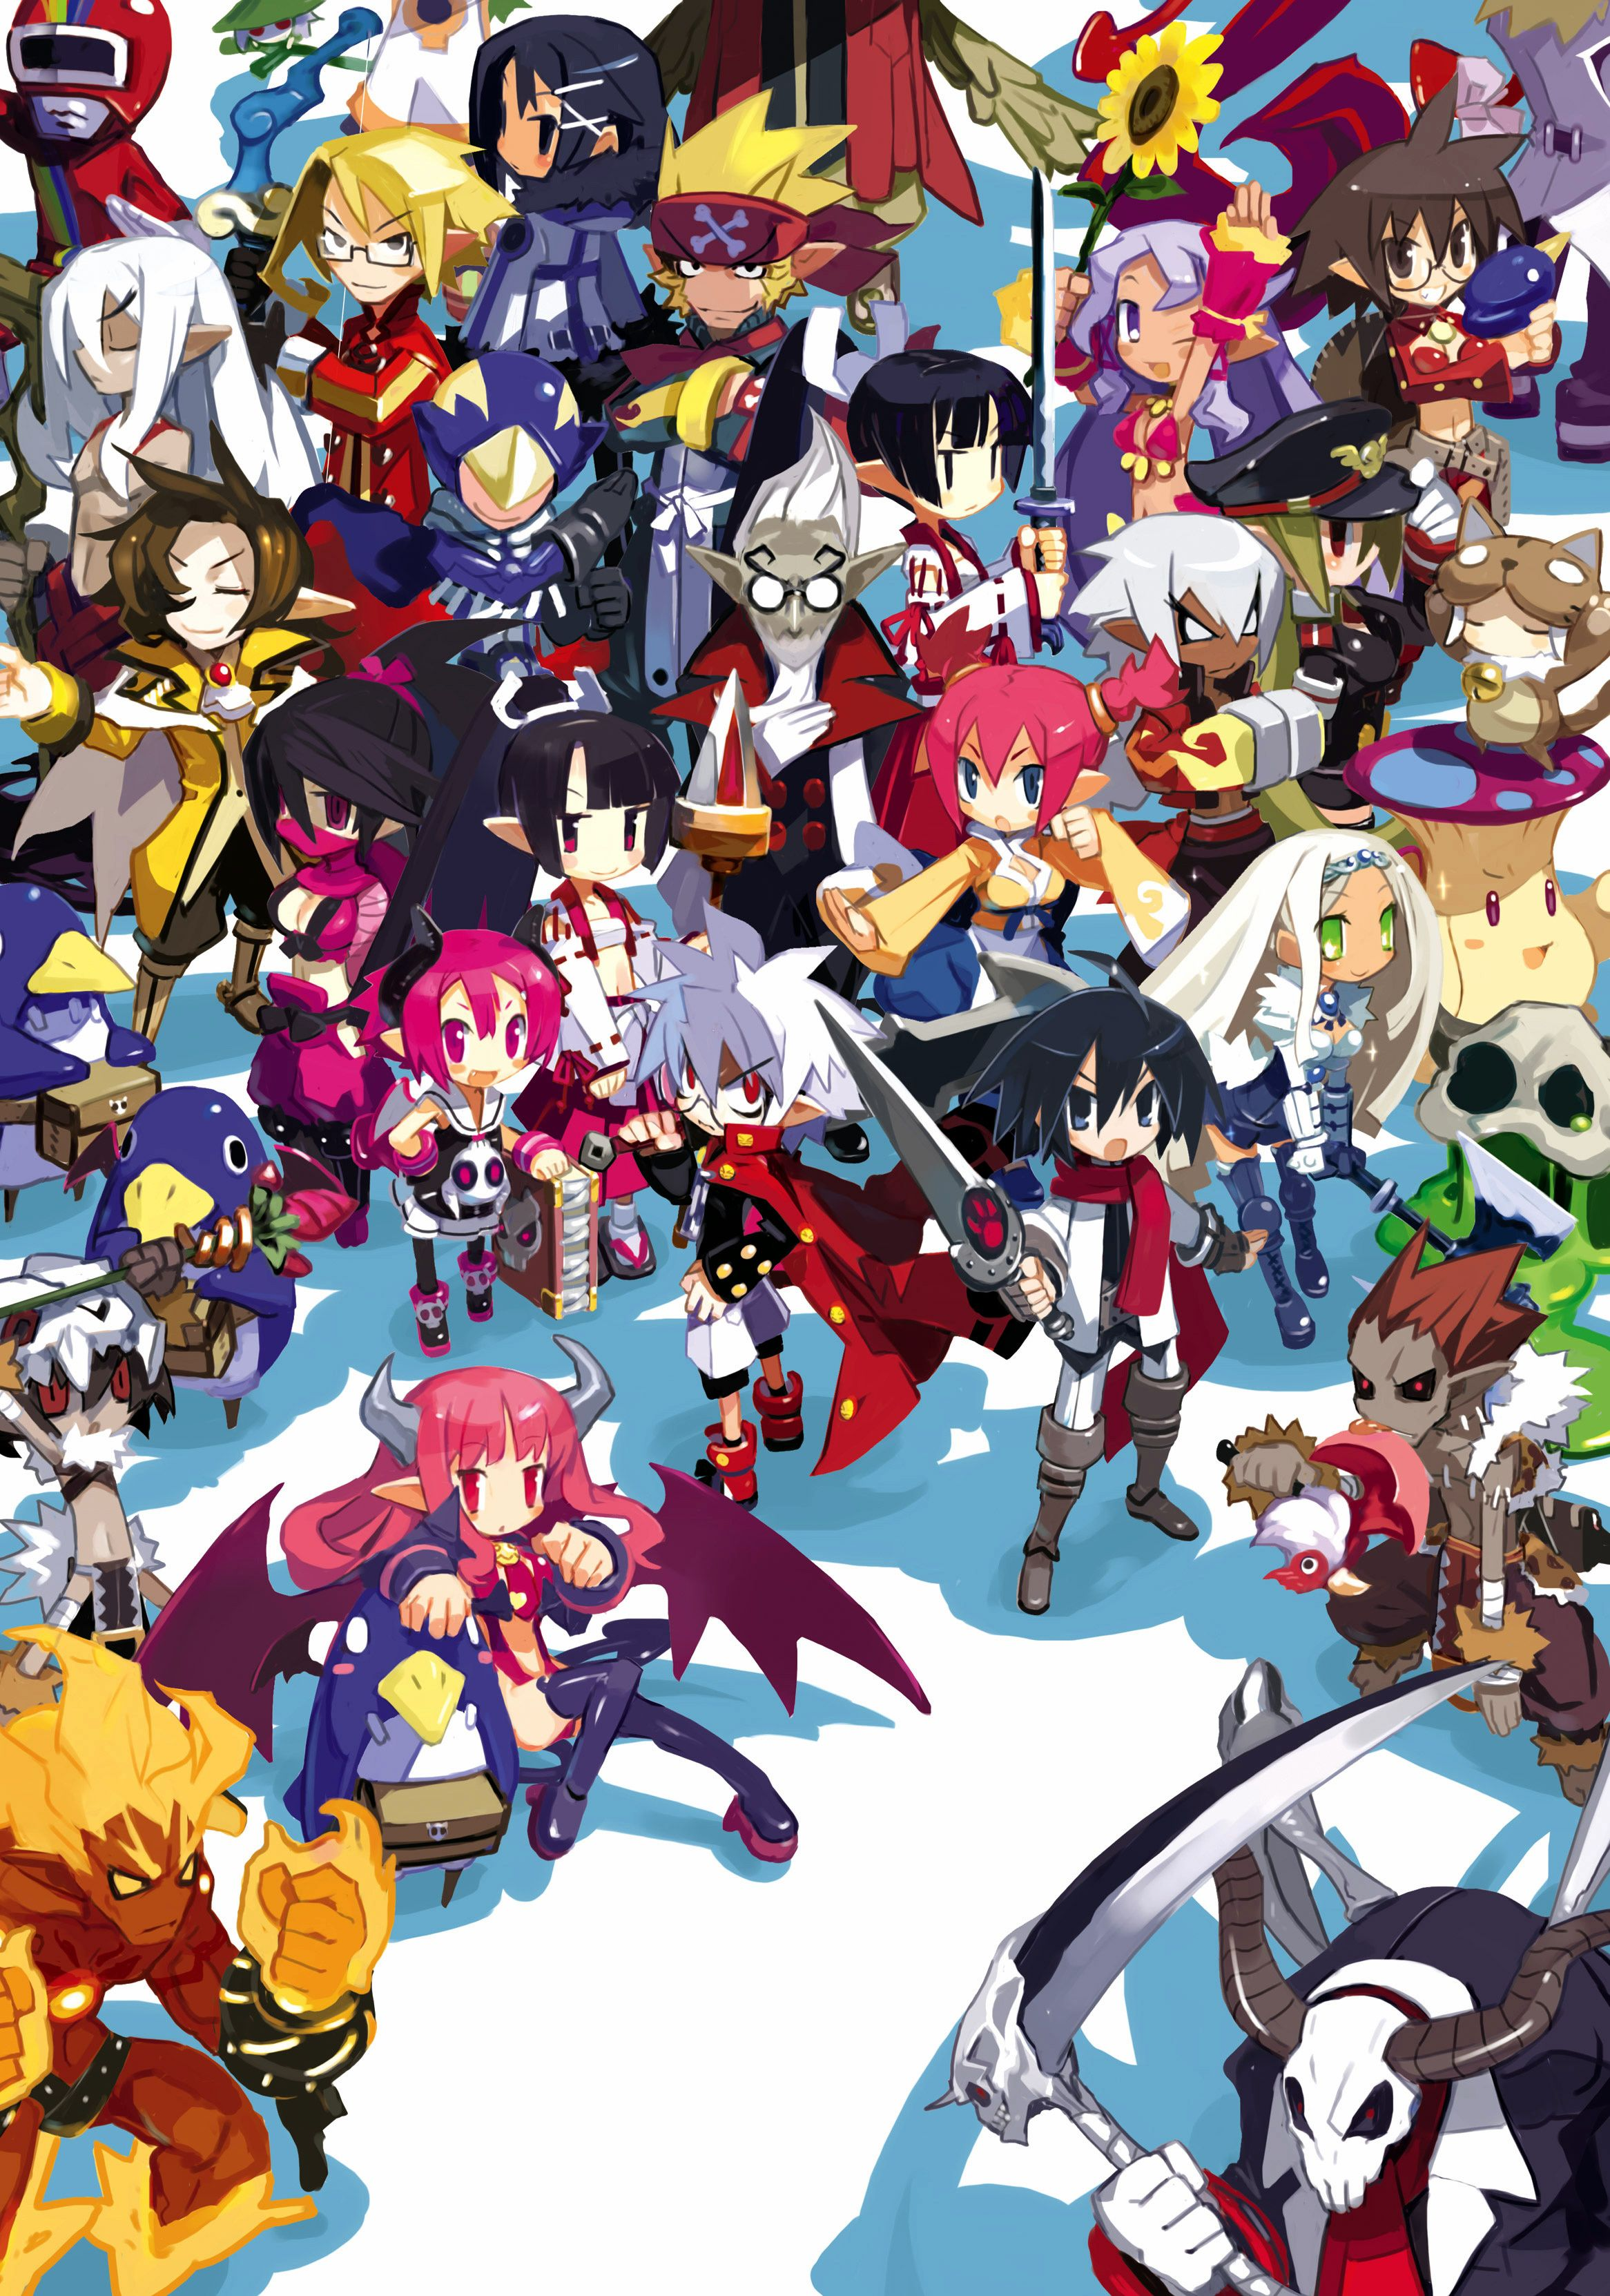 Pin By Greylle Shard On Player Character Designs Disgaea Anime Anime Images